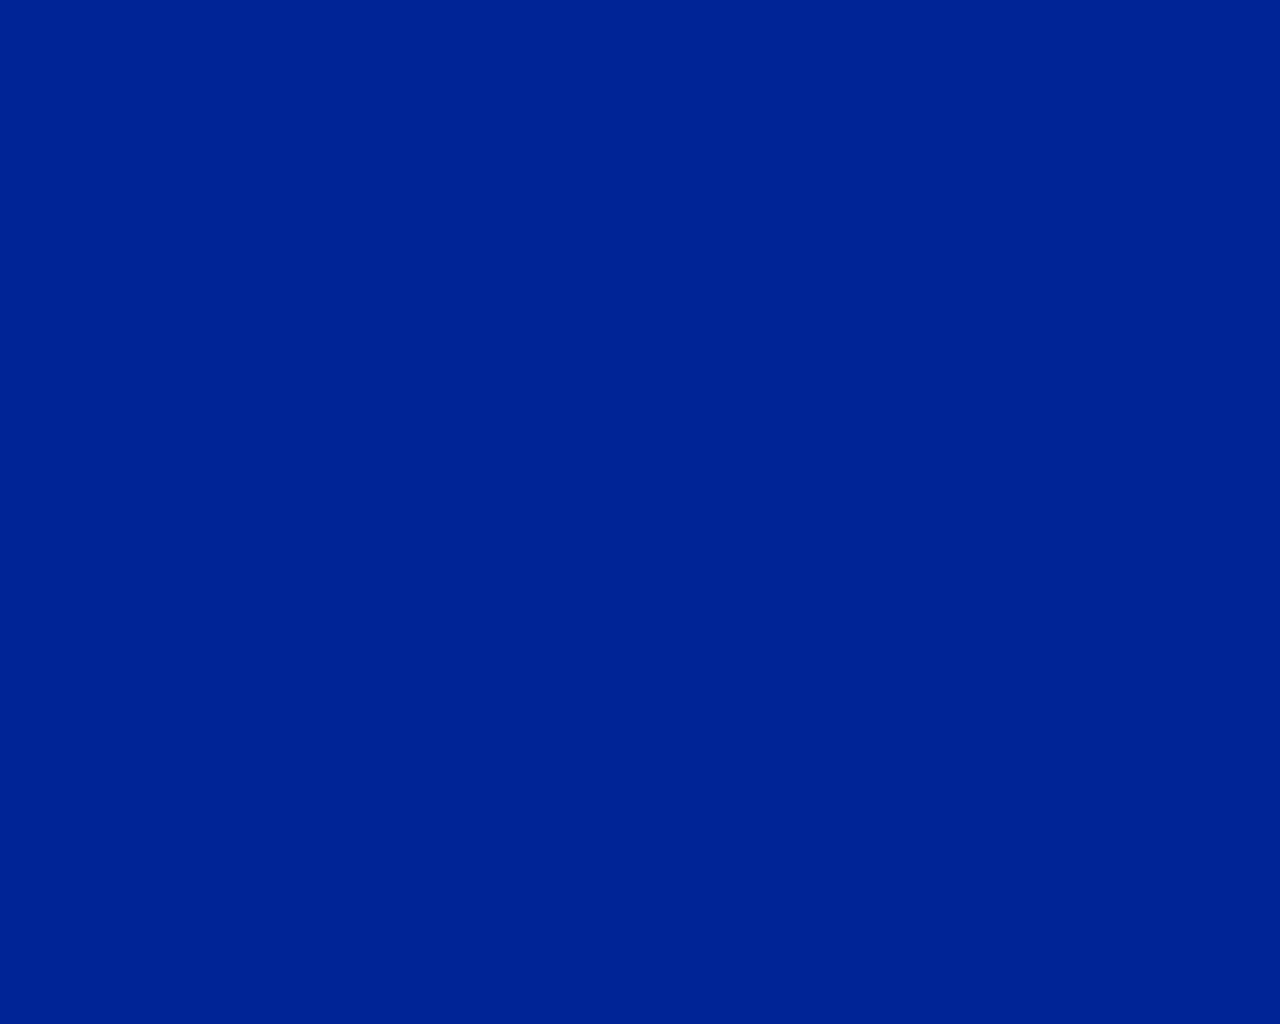 1280x1024 Imperial Blue Solid Color Background